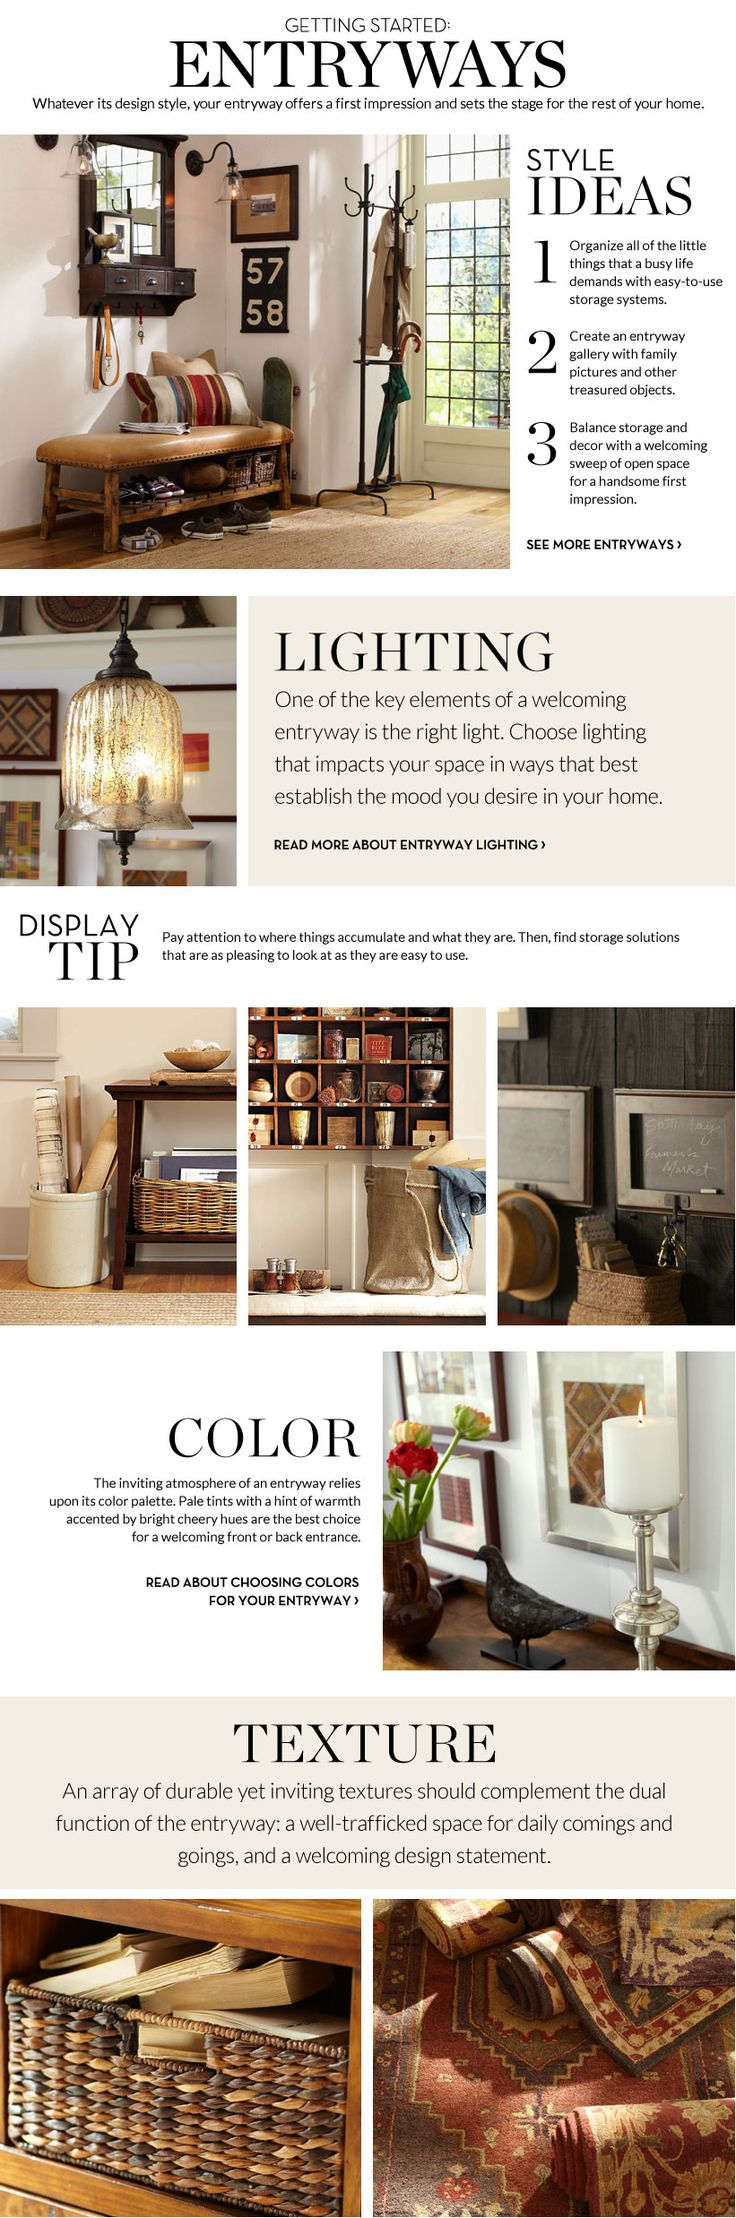 25 best ideas about pottery barn style on pinterest - Interior designer discount pottery barn ...